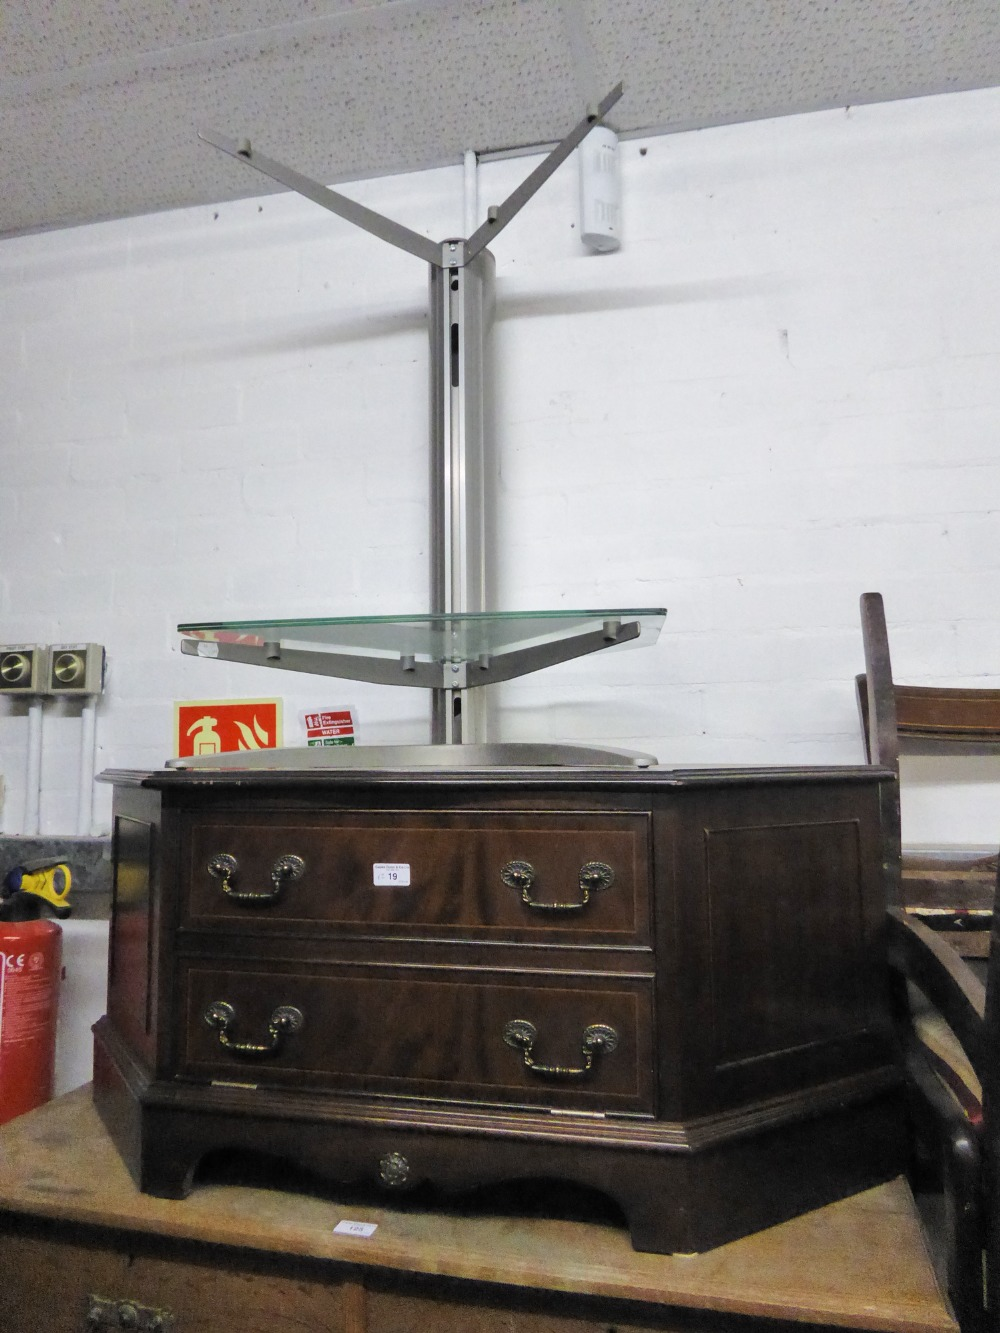 Lot 19 - A MAHOGANY CORNER TELEVISION STAND WITH FALL FRONT, AND A GREY CANTILEVER STAND WITH TWO PLATE GLASS